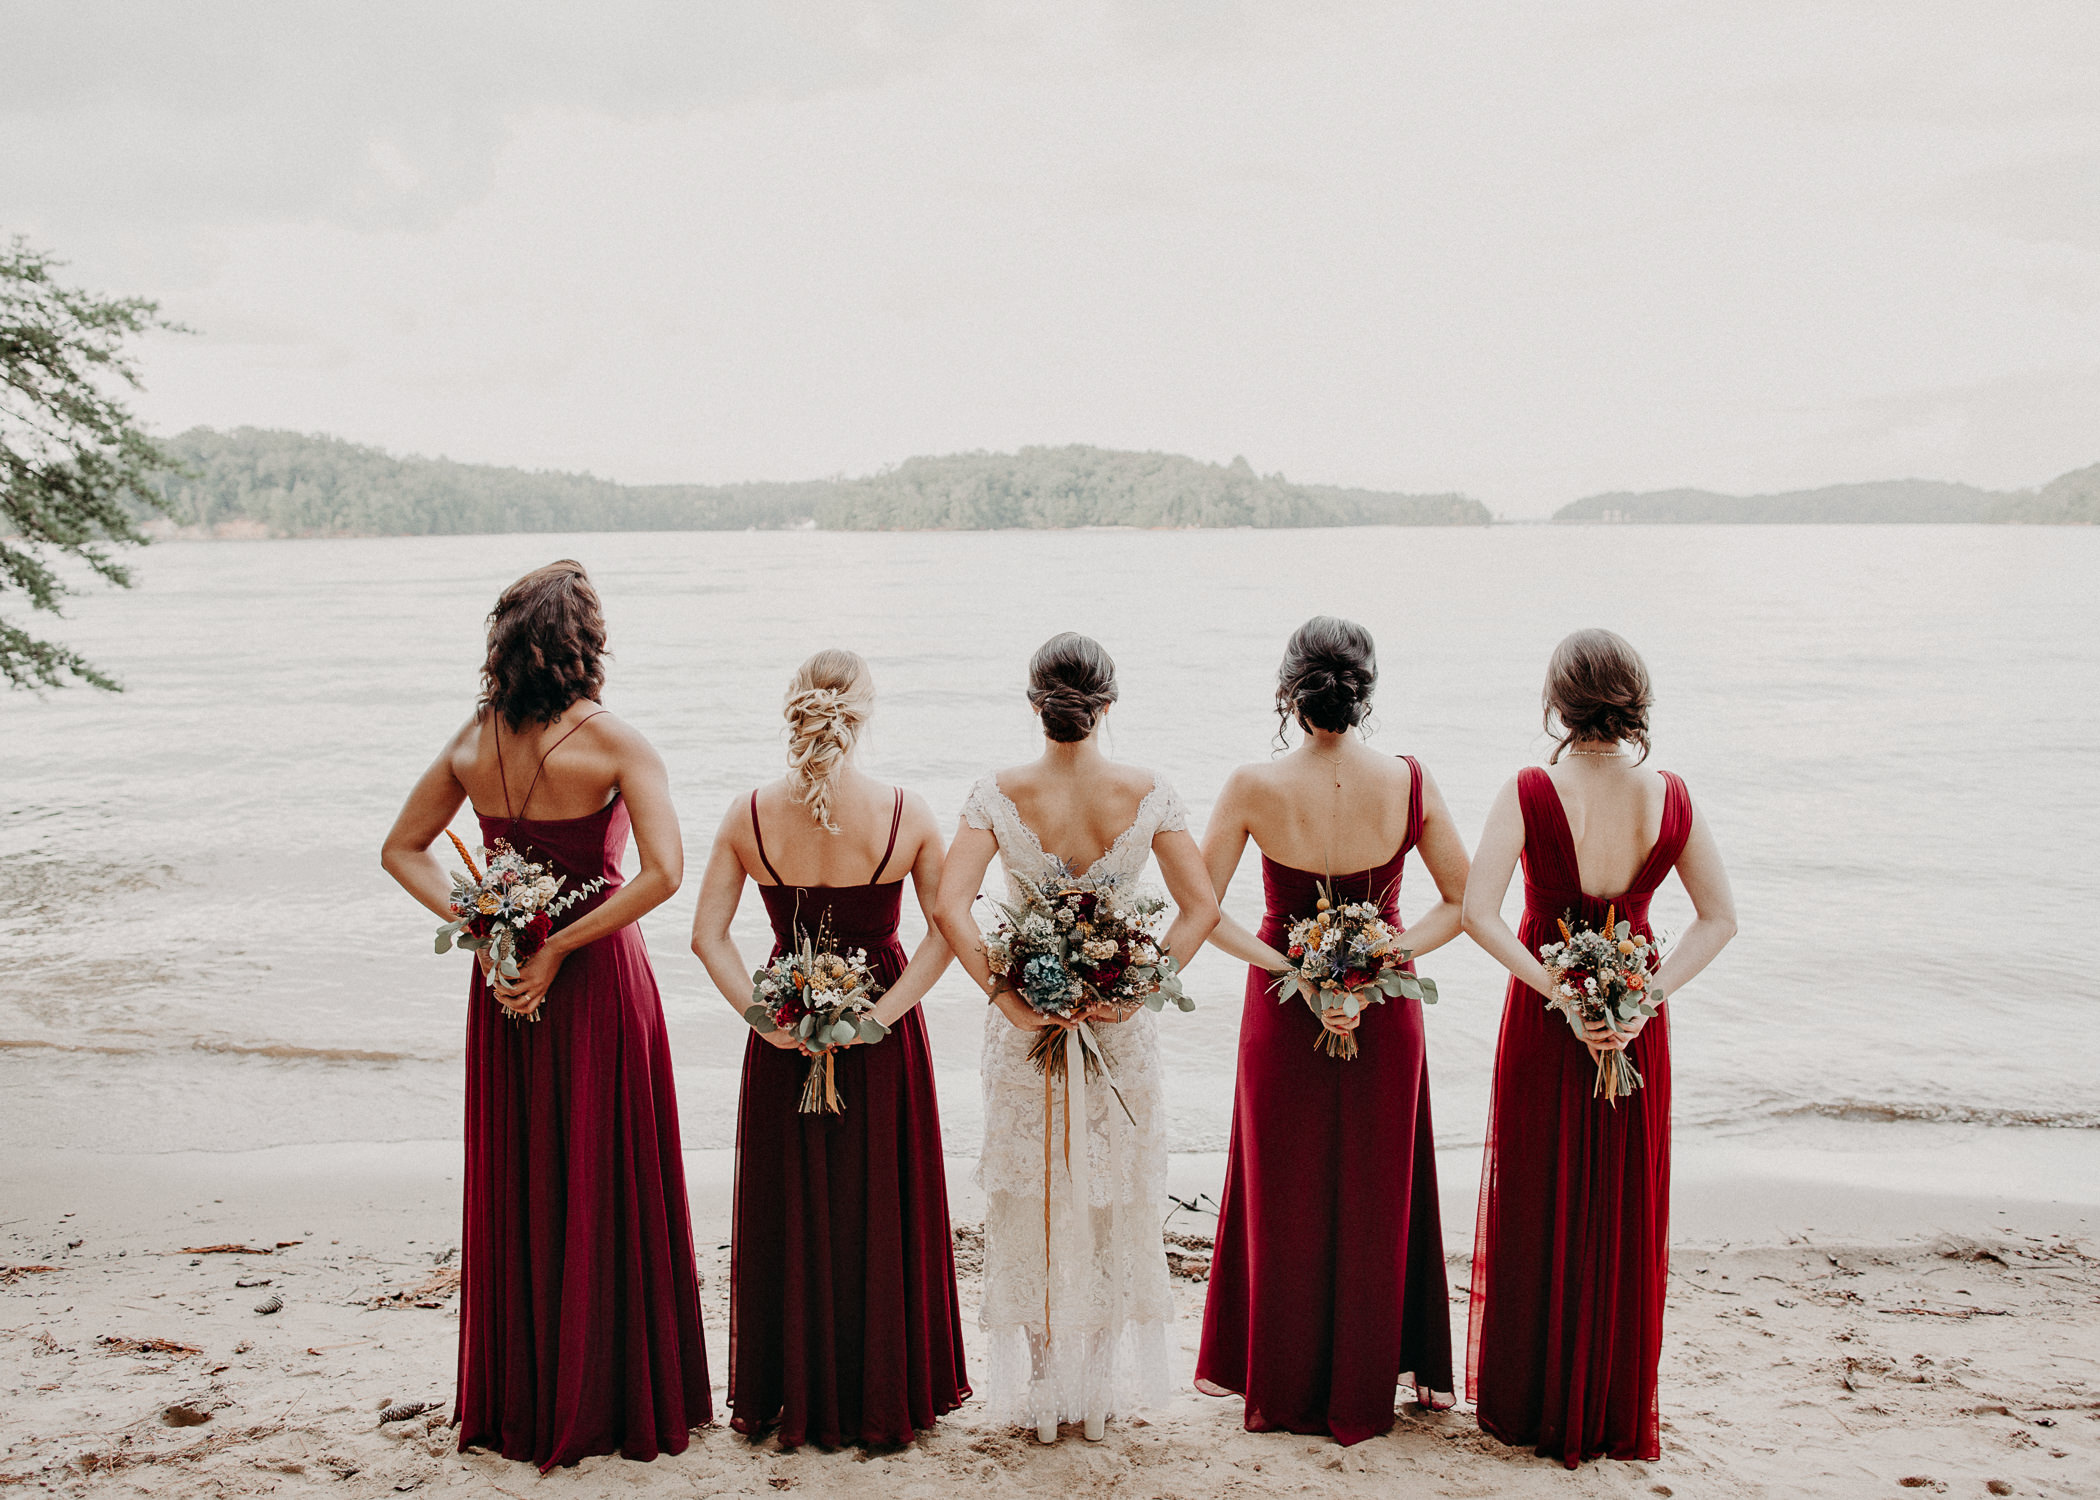 88 Bridal Party and Bride & Groom Portraits before the ceremony on wedding day - Atlanta Wedding Photographer .jpg